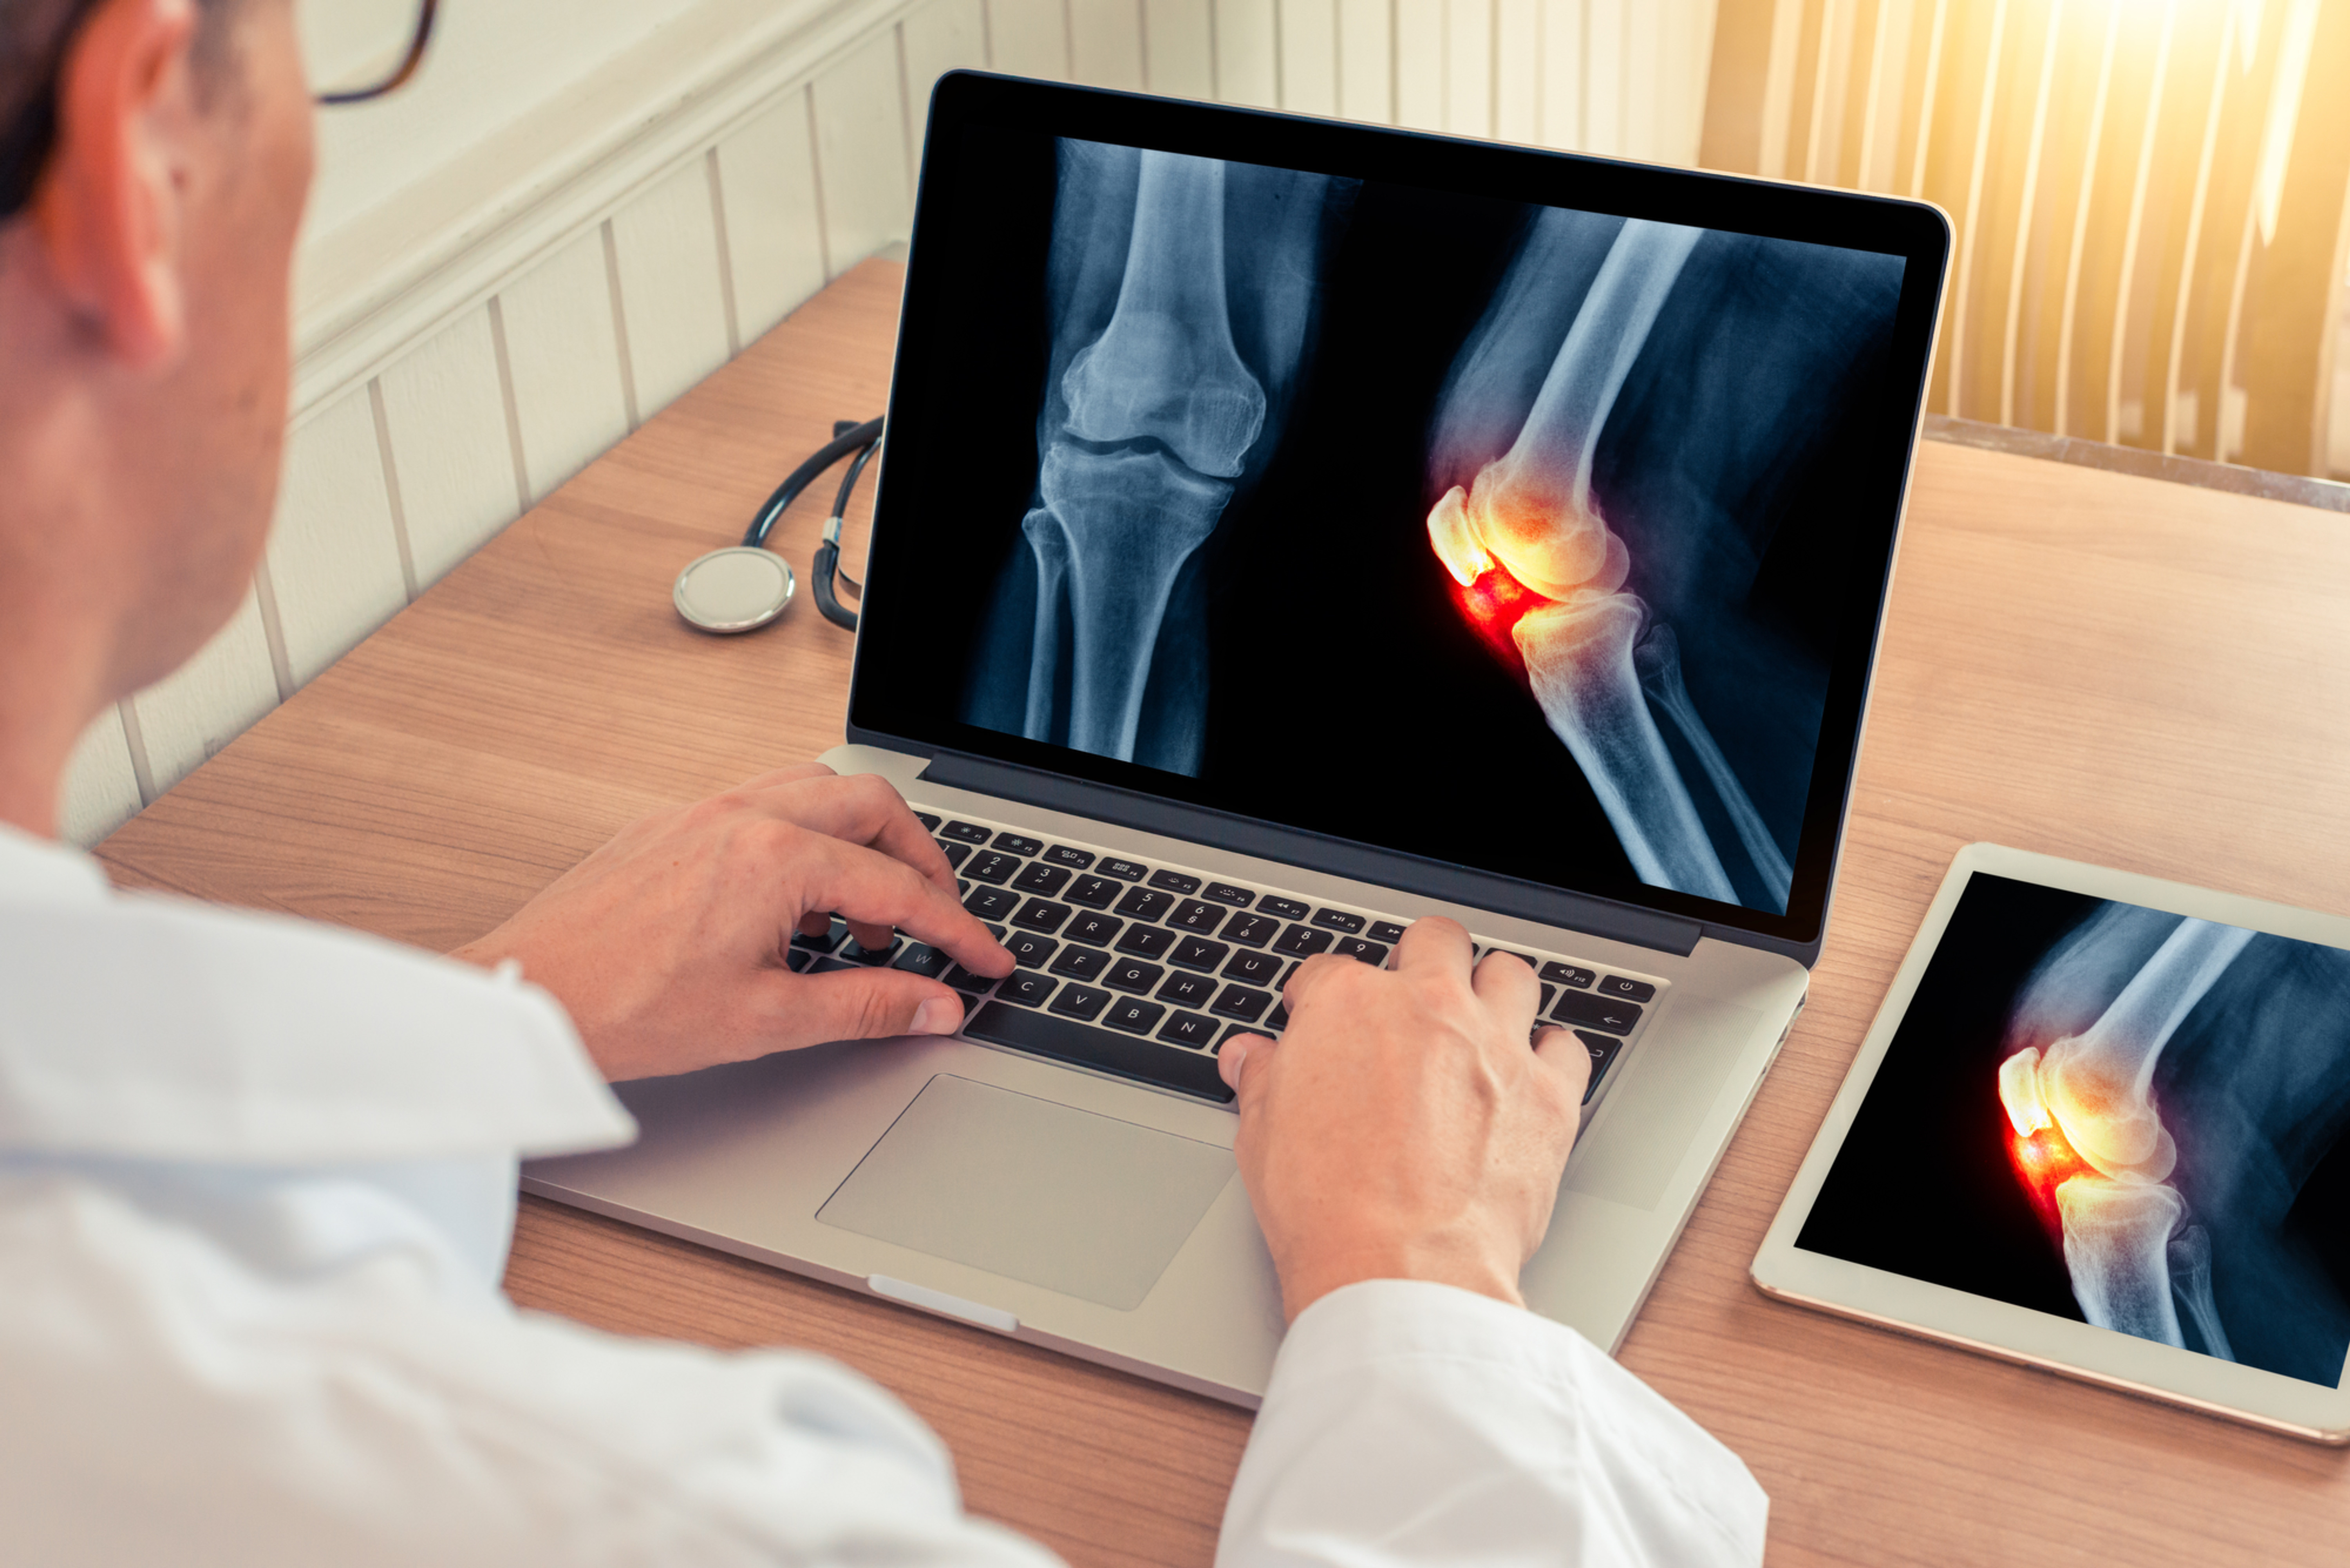 Foot ankle and Knee sprain/injury/pain